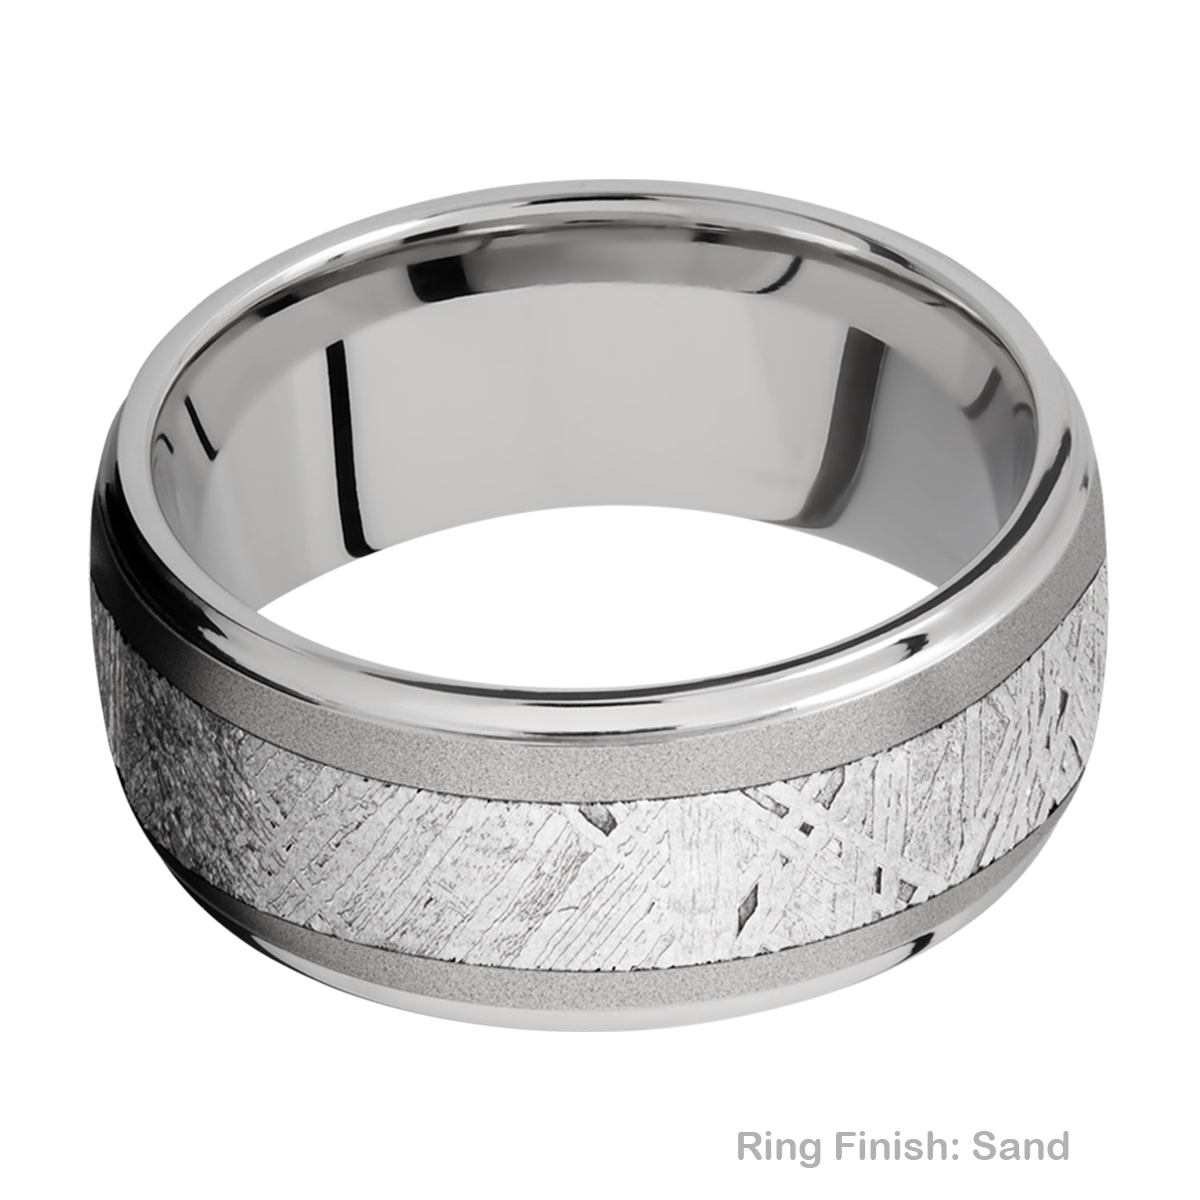 Lashbrook 10DGE15/METEORITE Titanium Wedding Ring or Band Alternative View 4